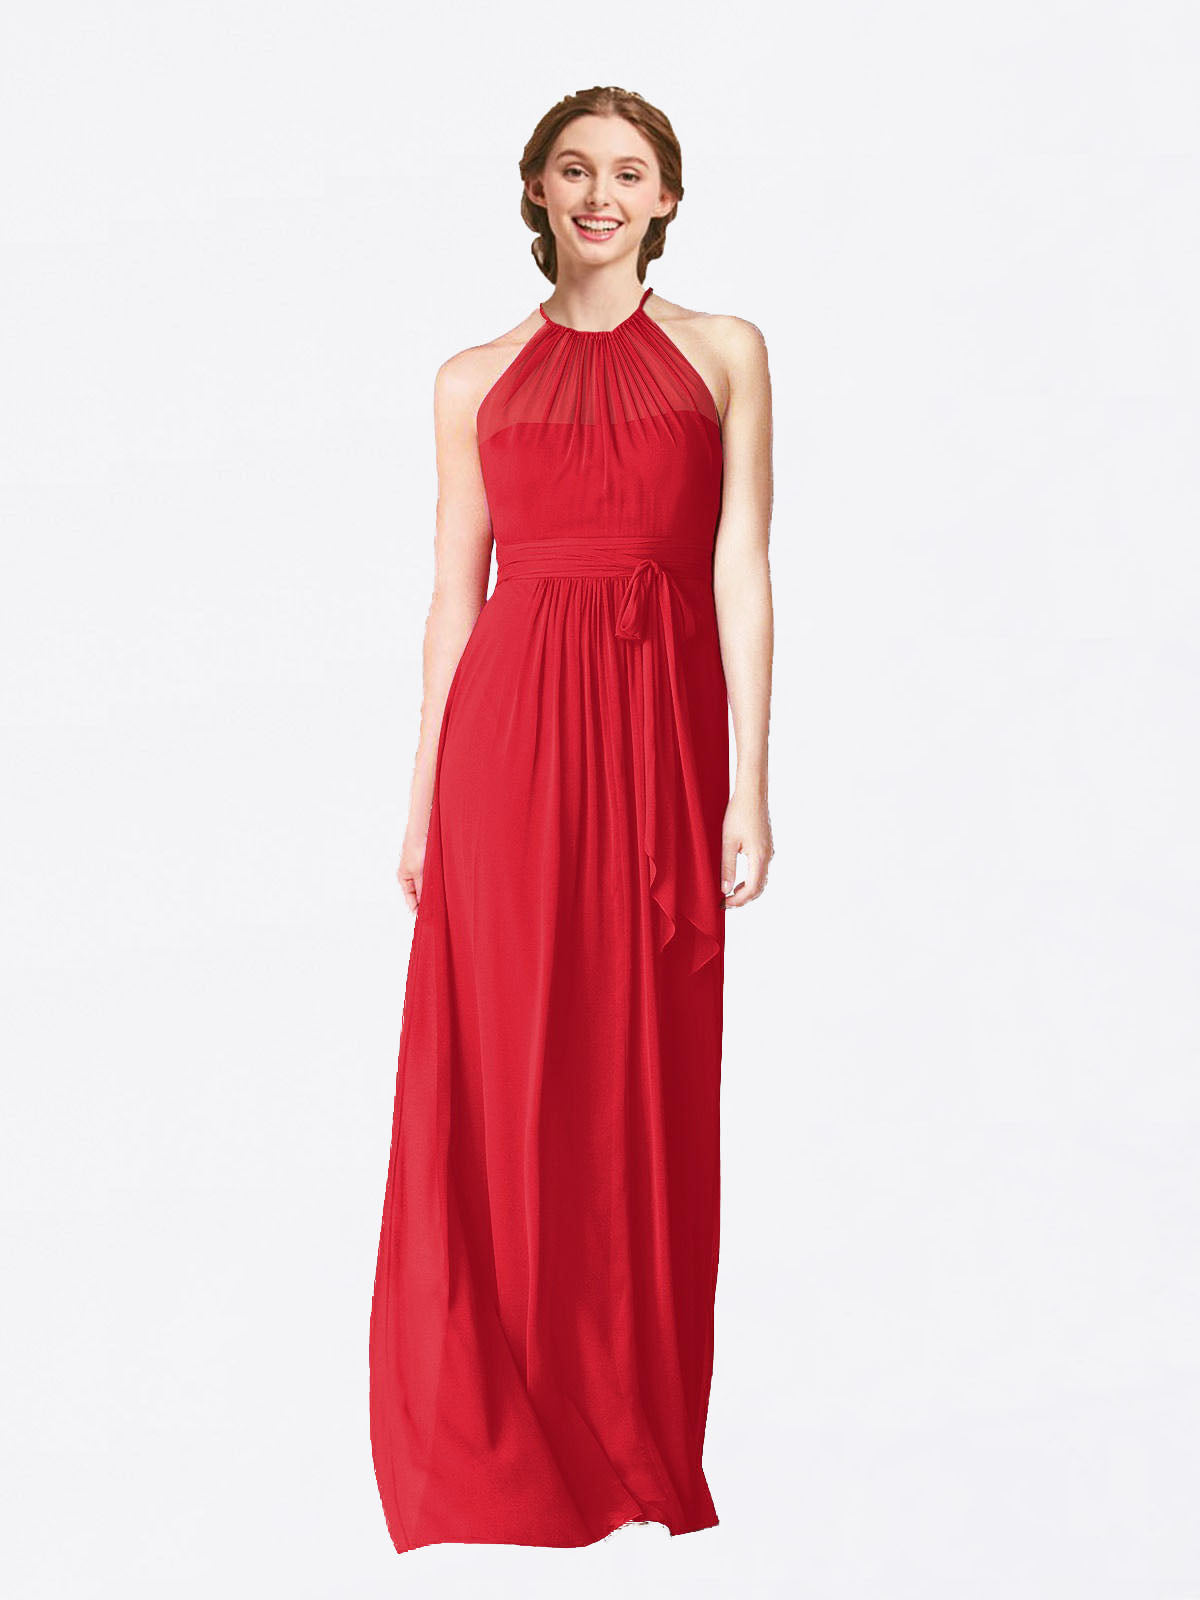 Long A-Line Halter Sleeveless Red Chiffon Bridesmaid Dress Laura